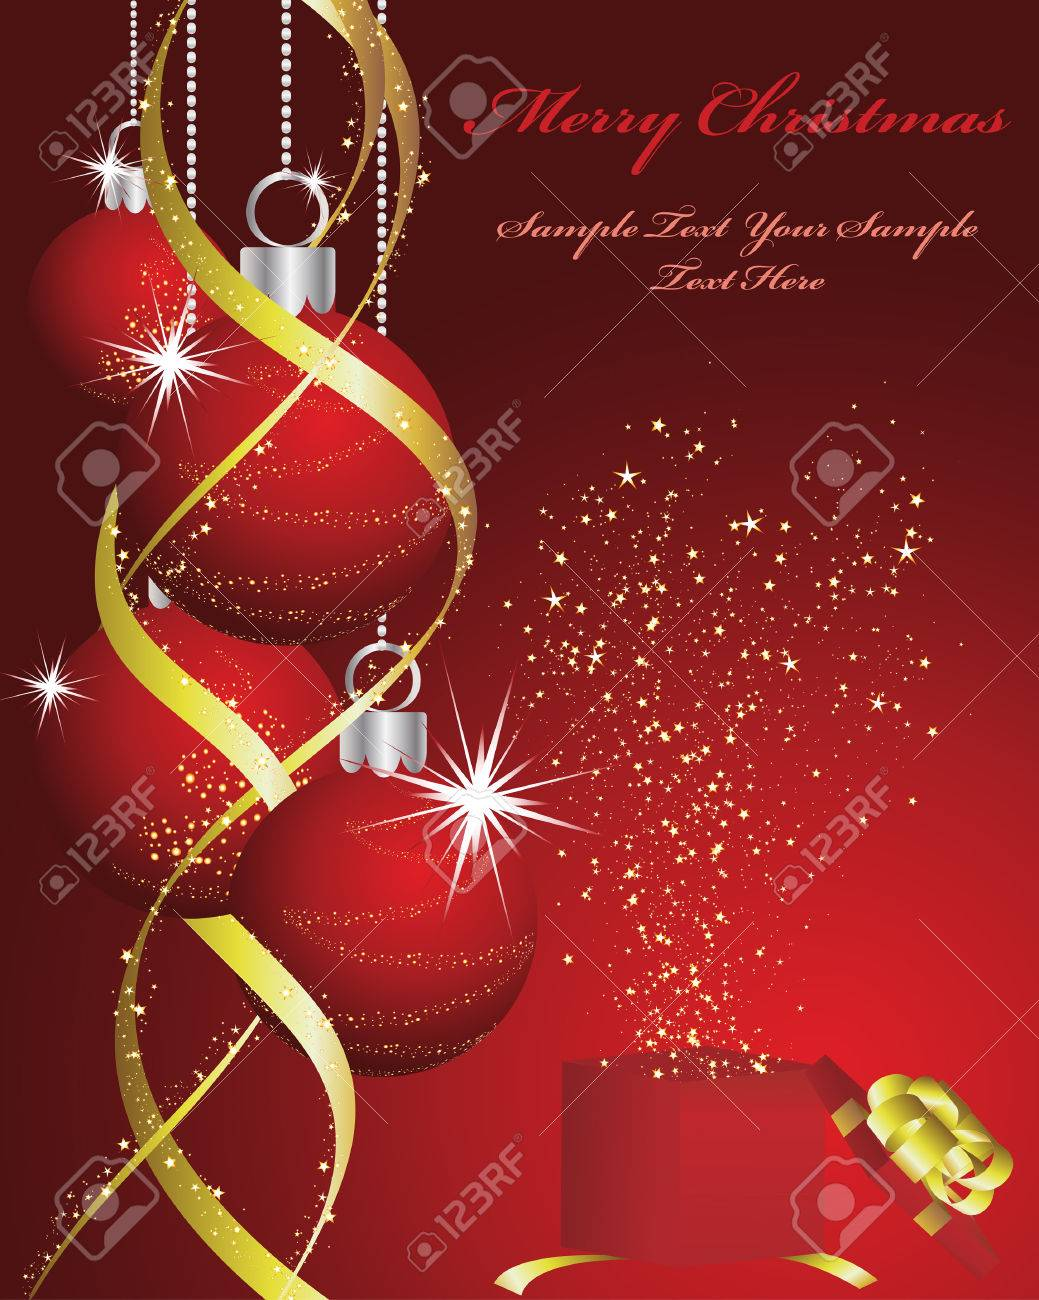 Beautiful vector christmas new year background for design use - Beautiful Vector Christmas New Year Background For Design Use Stock Vector 5868460